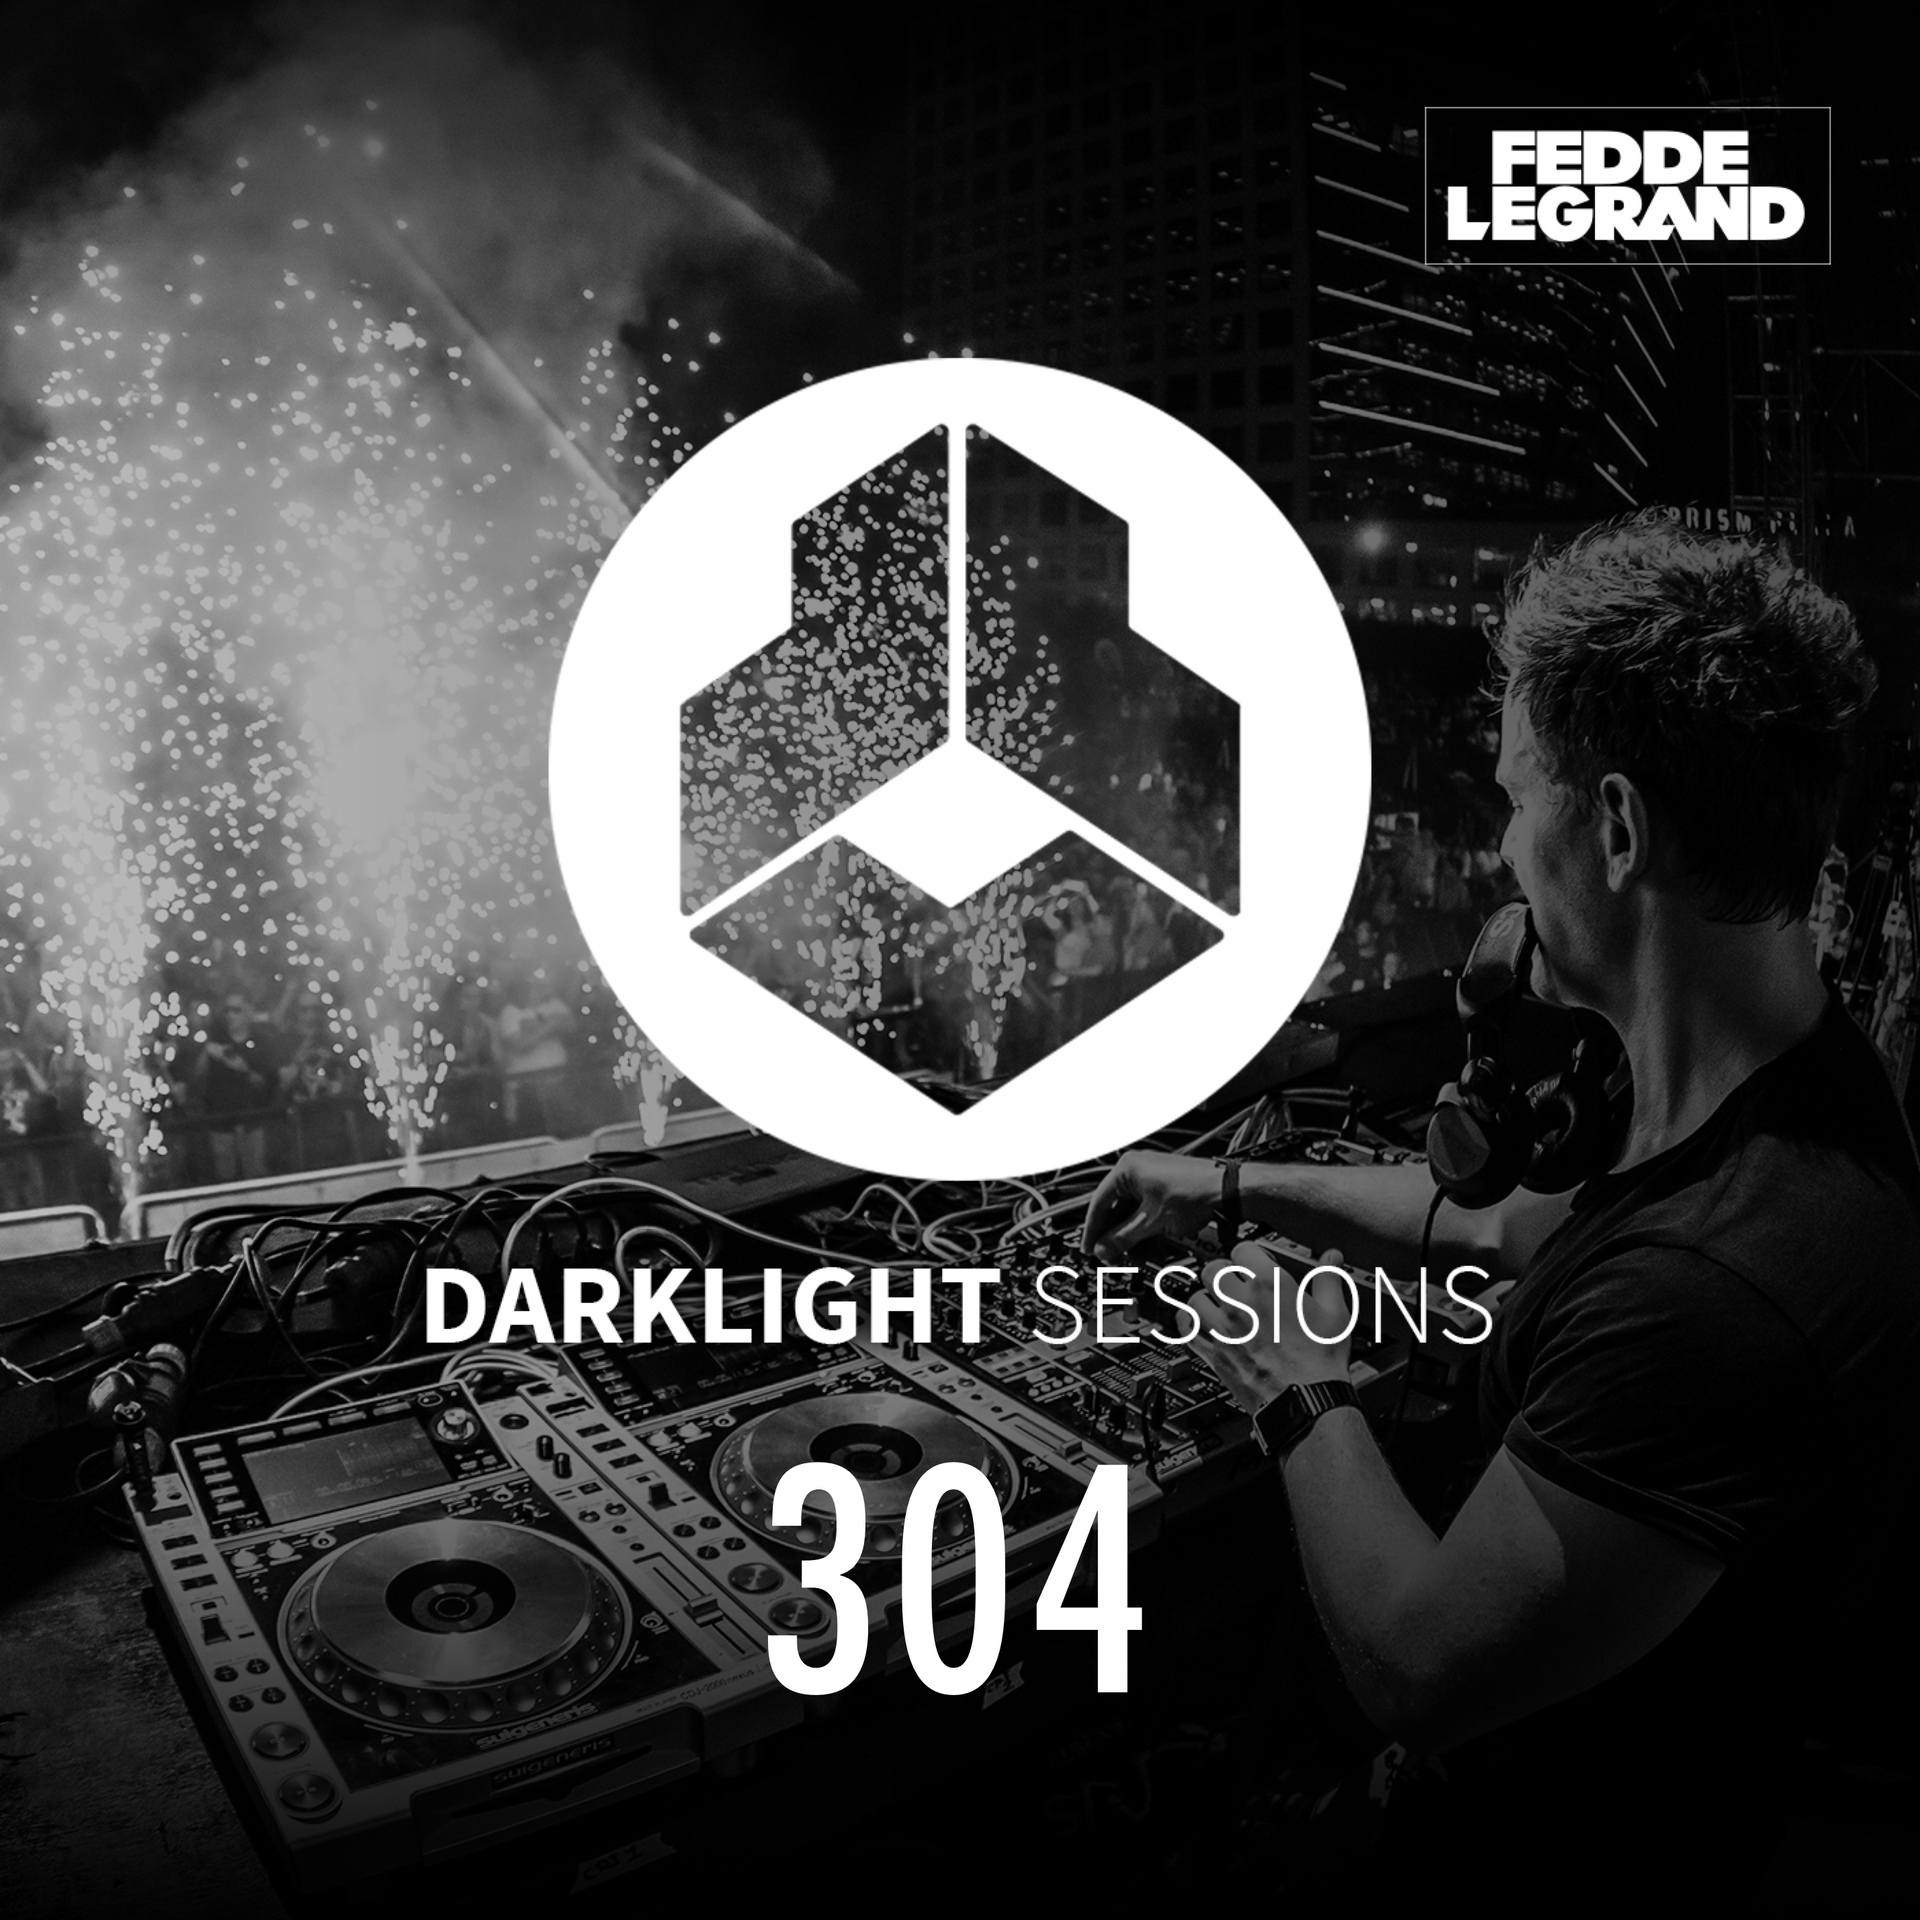 Darklight Sessions 304